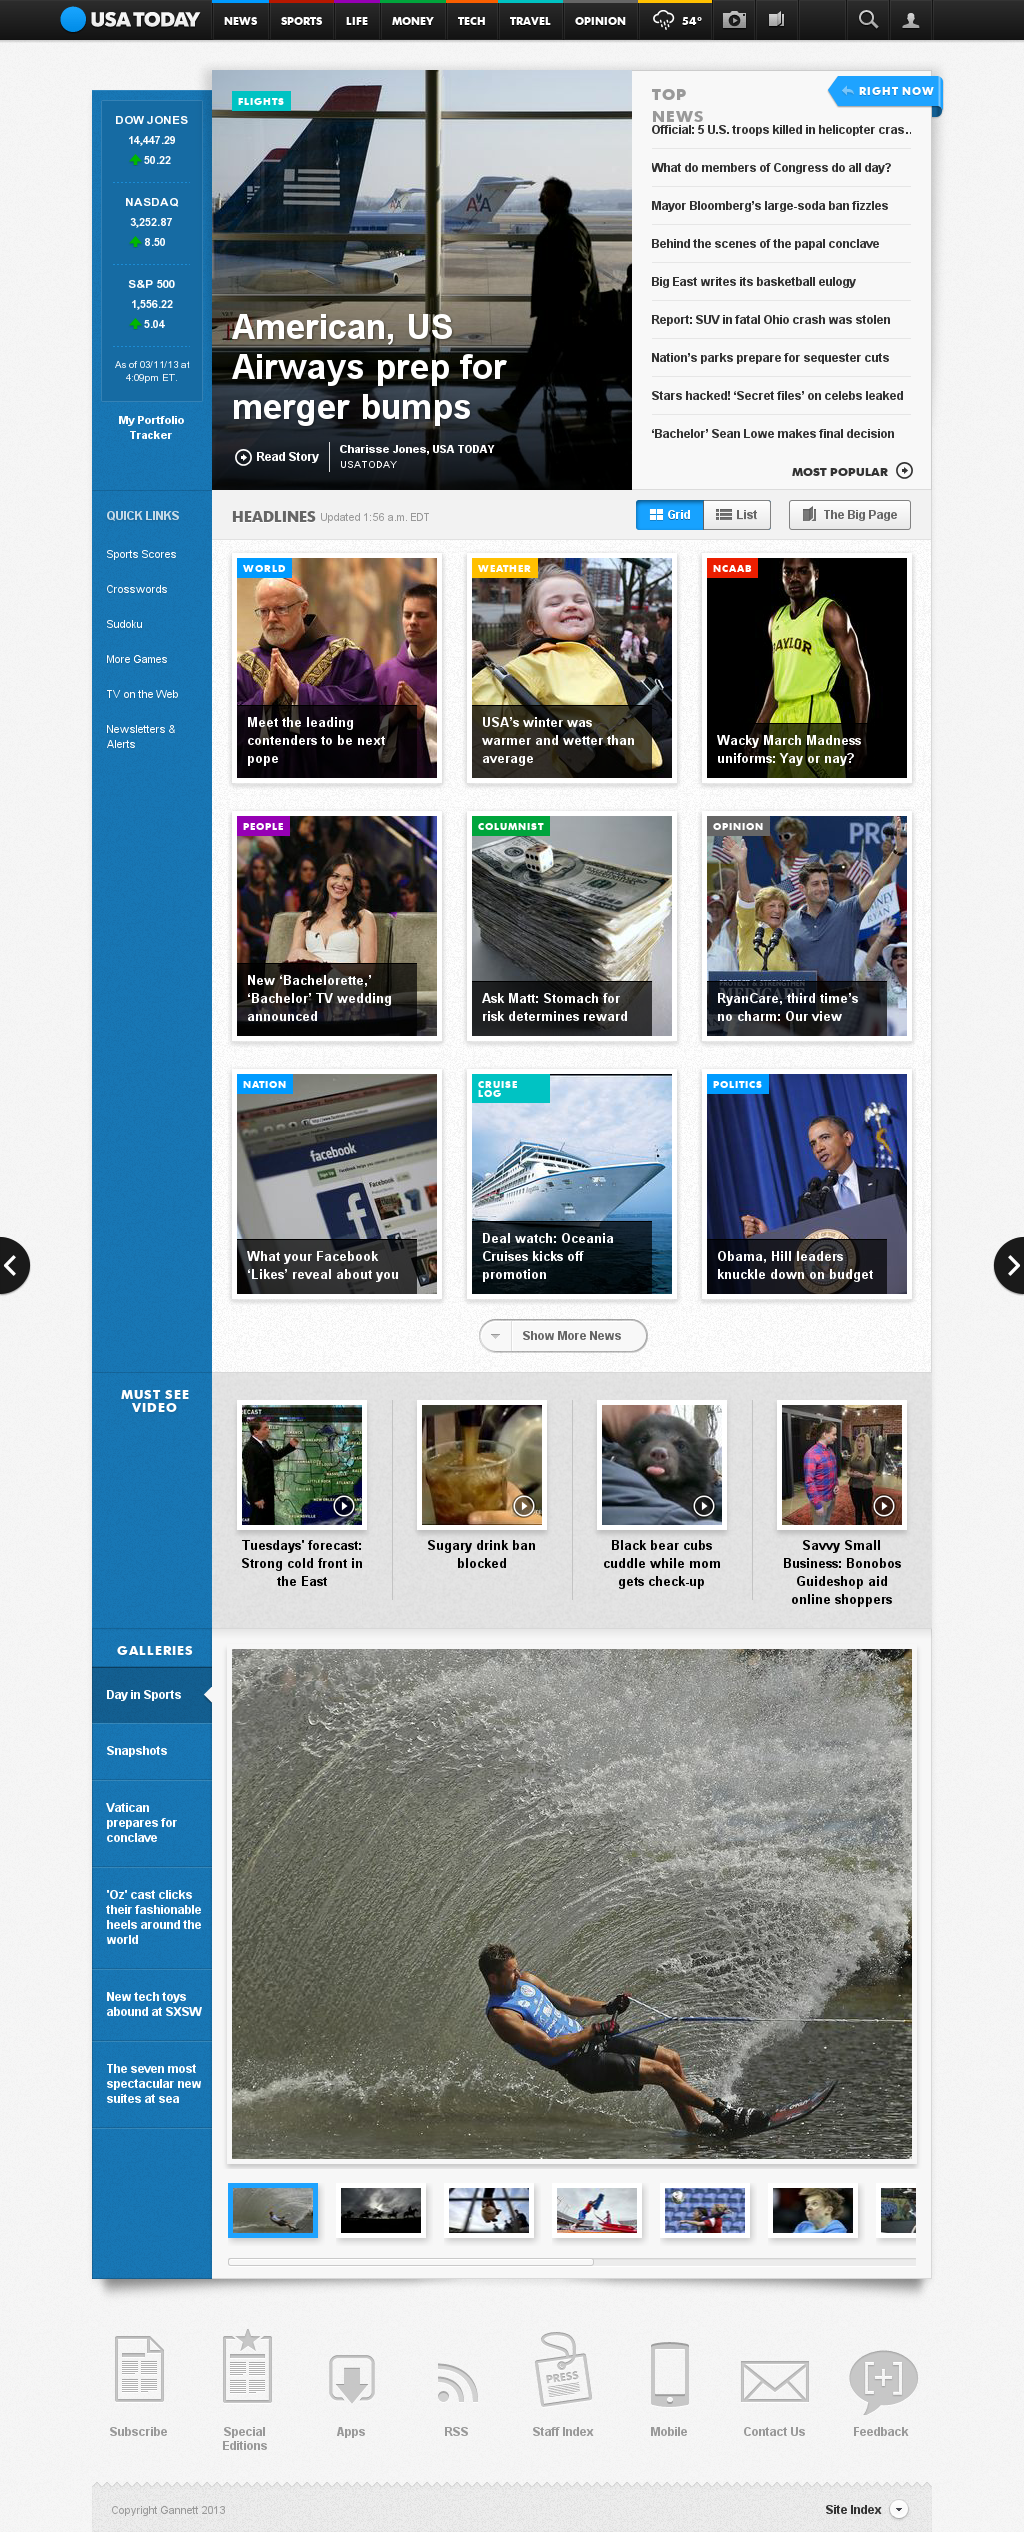 USA Today at Tuesday March 12, 2013, 6:27 a.m. UTC